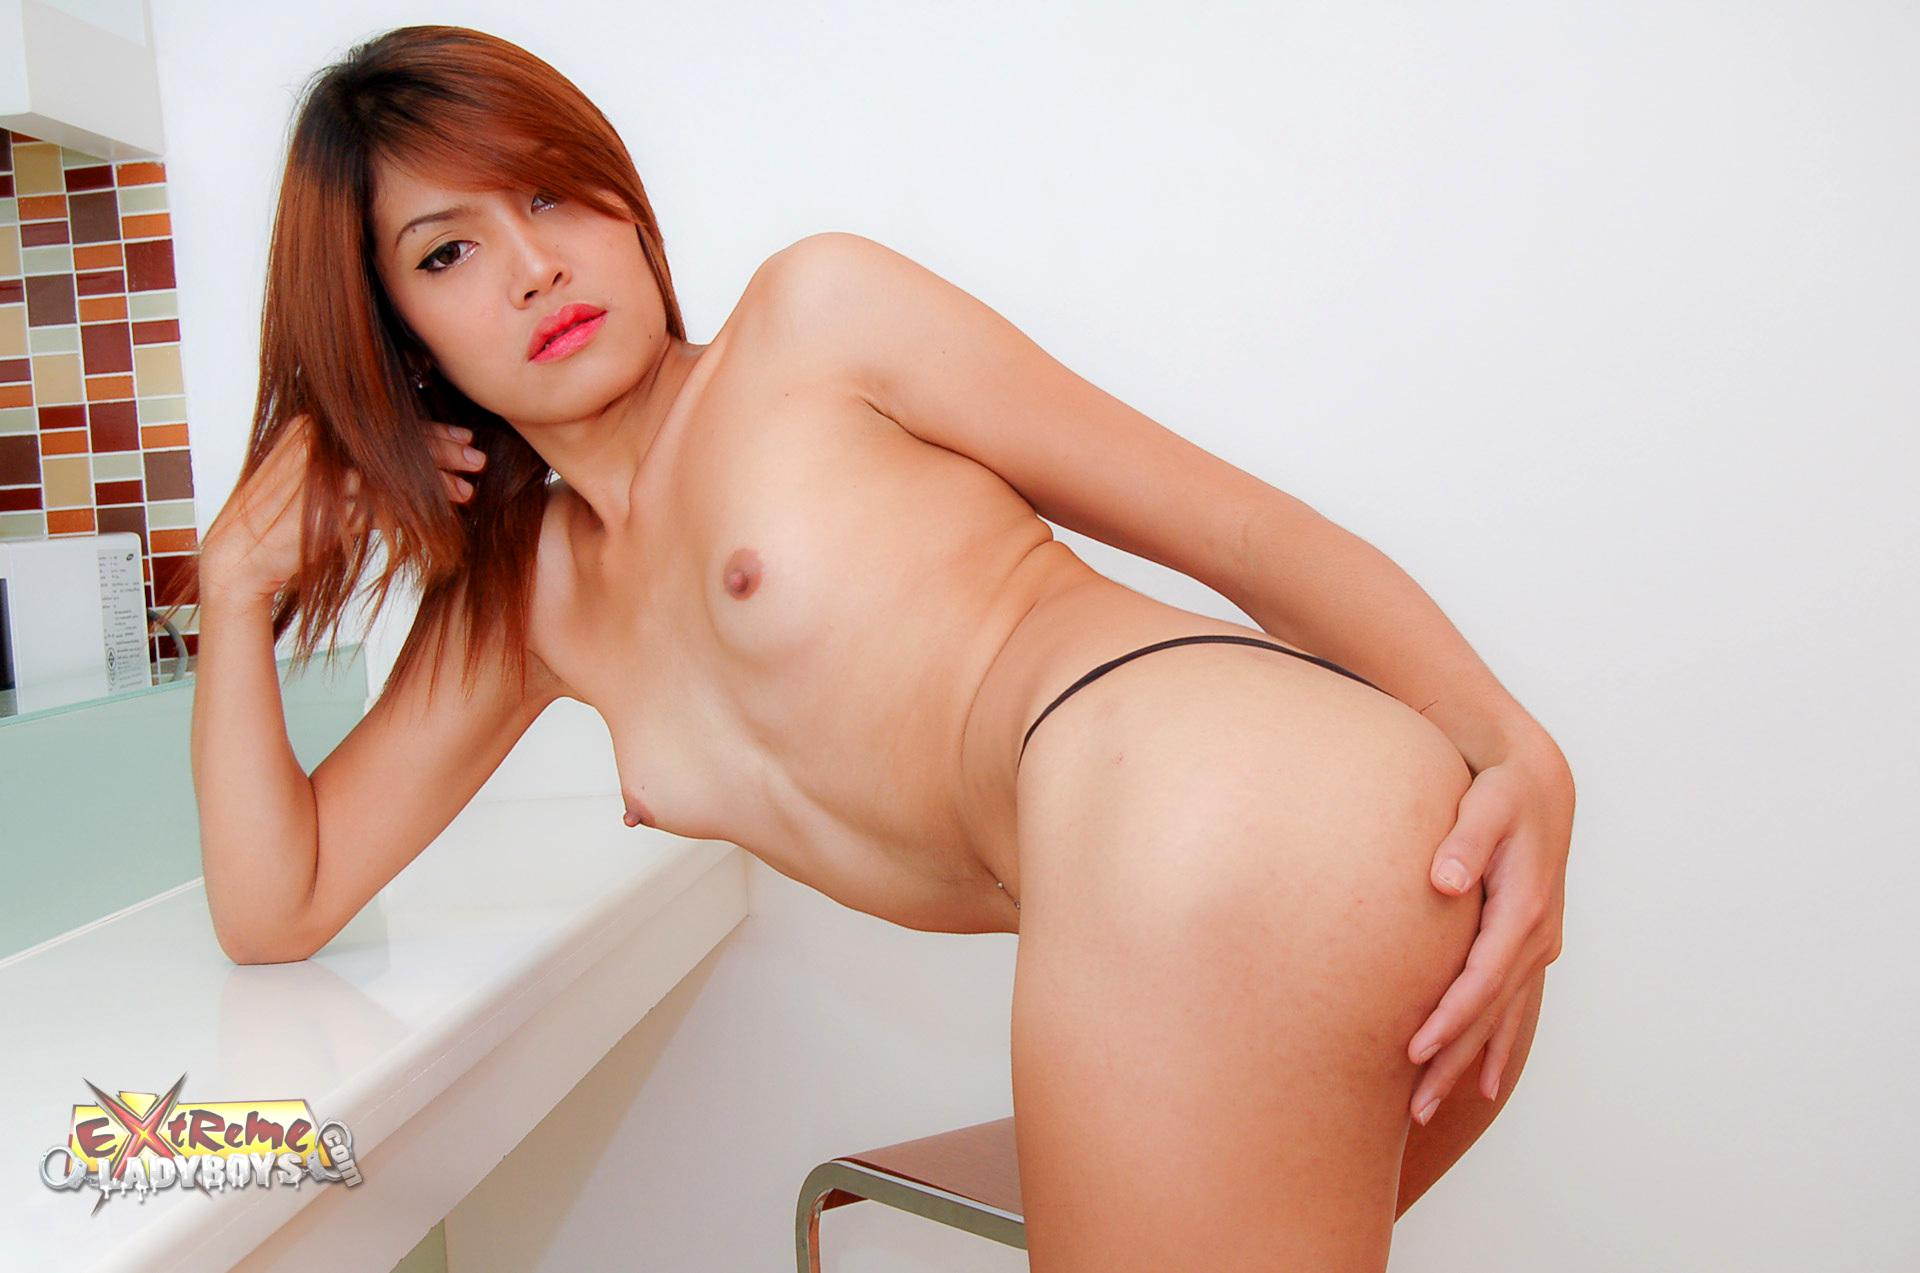 Thai Transexual Pinky Plays With Anal Beads